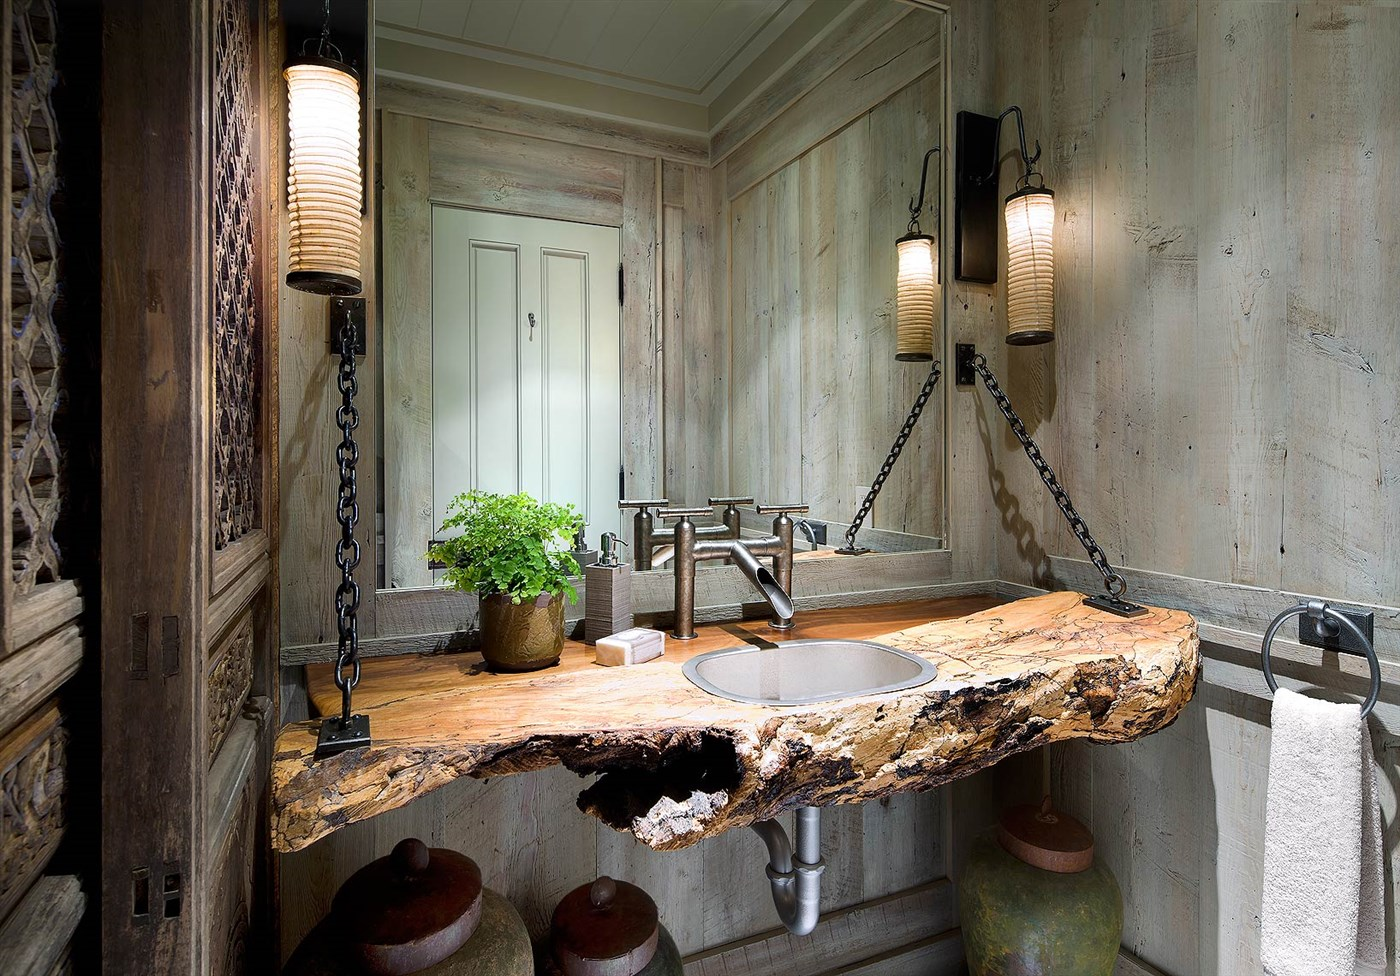 Cozy wood sink design ideas, bathroom